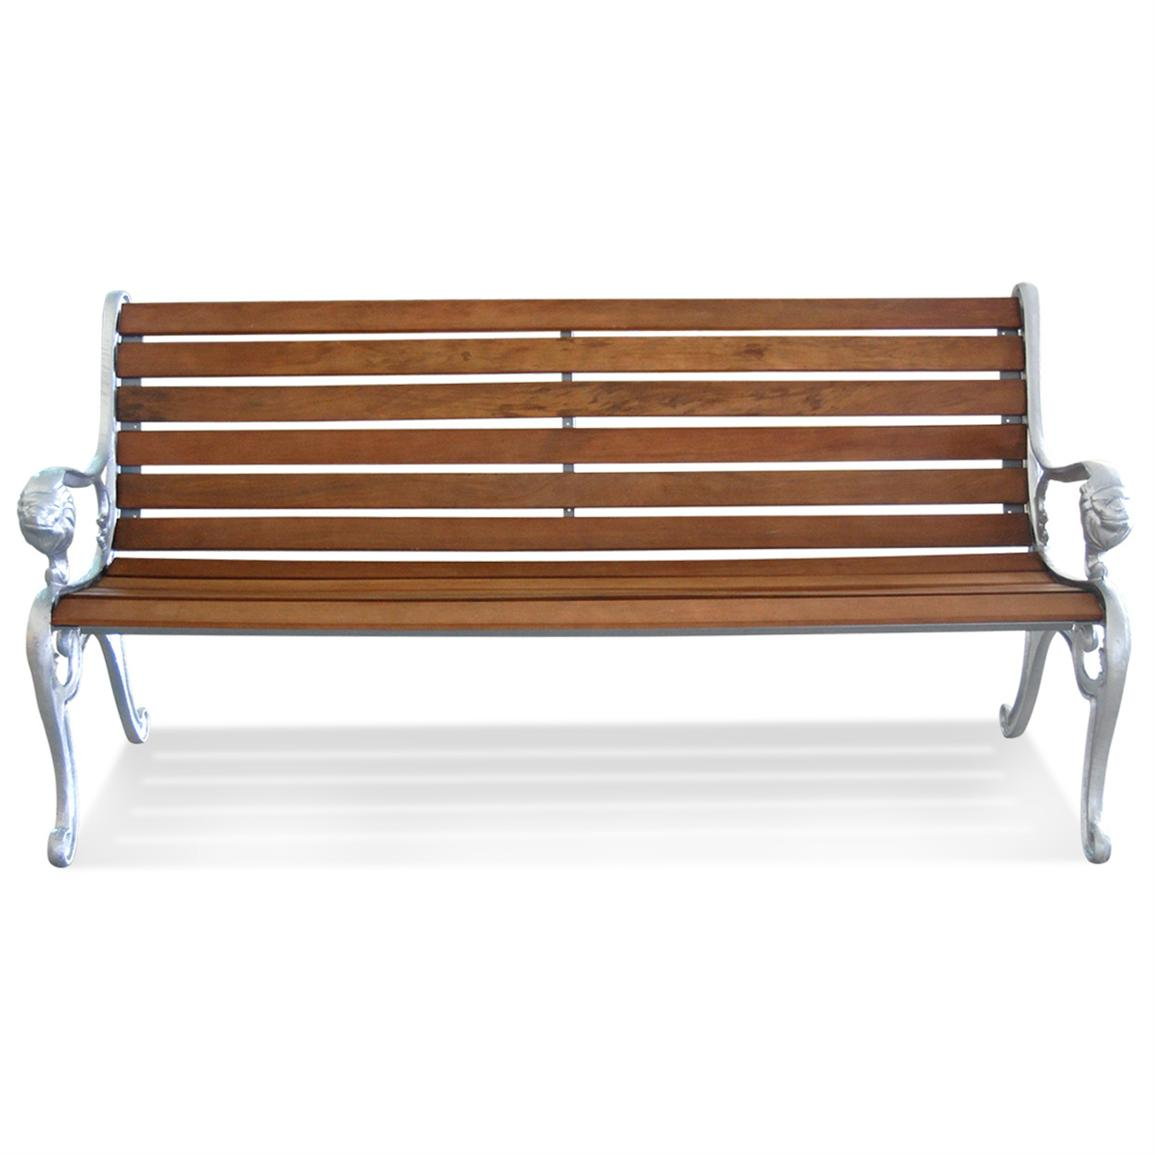 Park bench from behind clipart clipart royalty free library 91+ Park Bench Clipart | ClipartLook clipart royalty free library